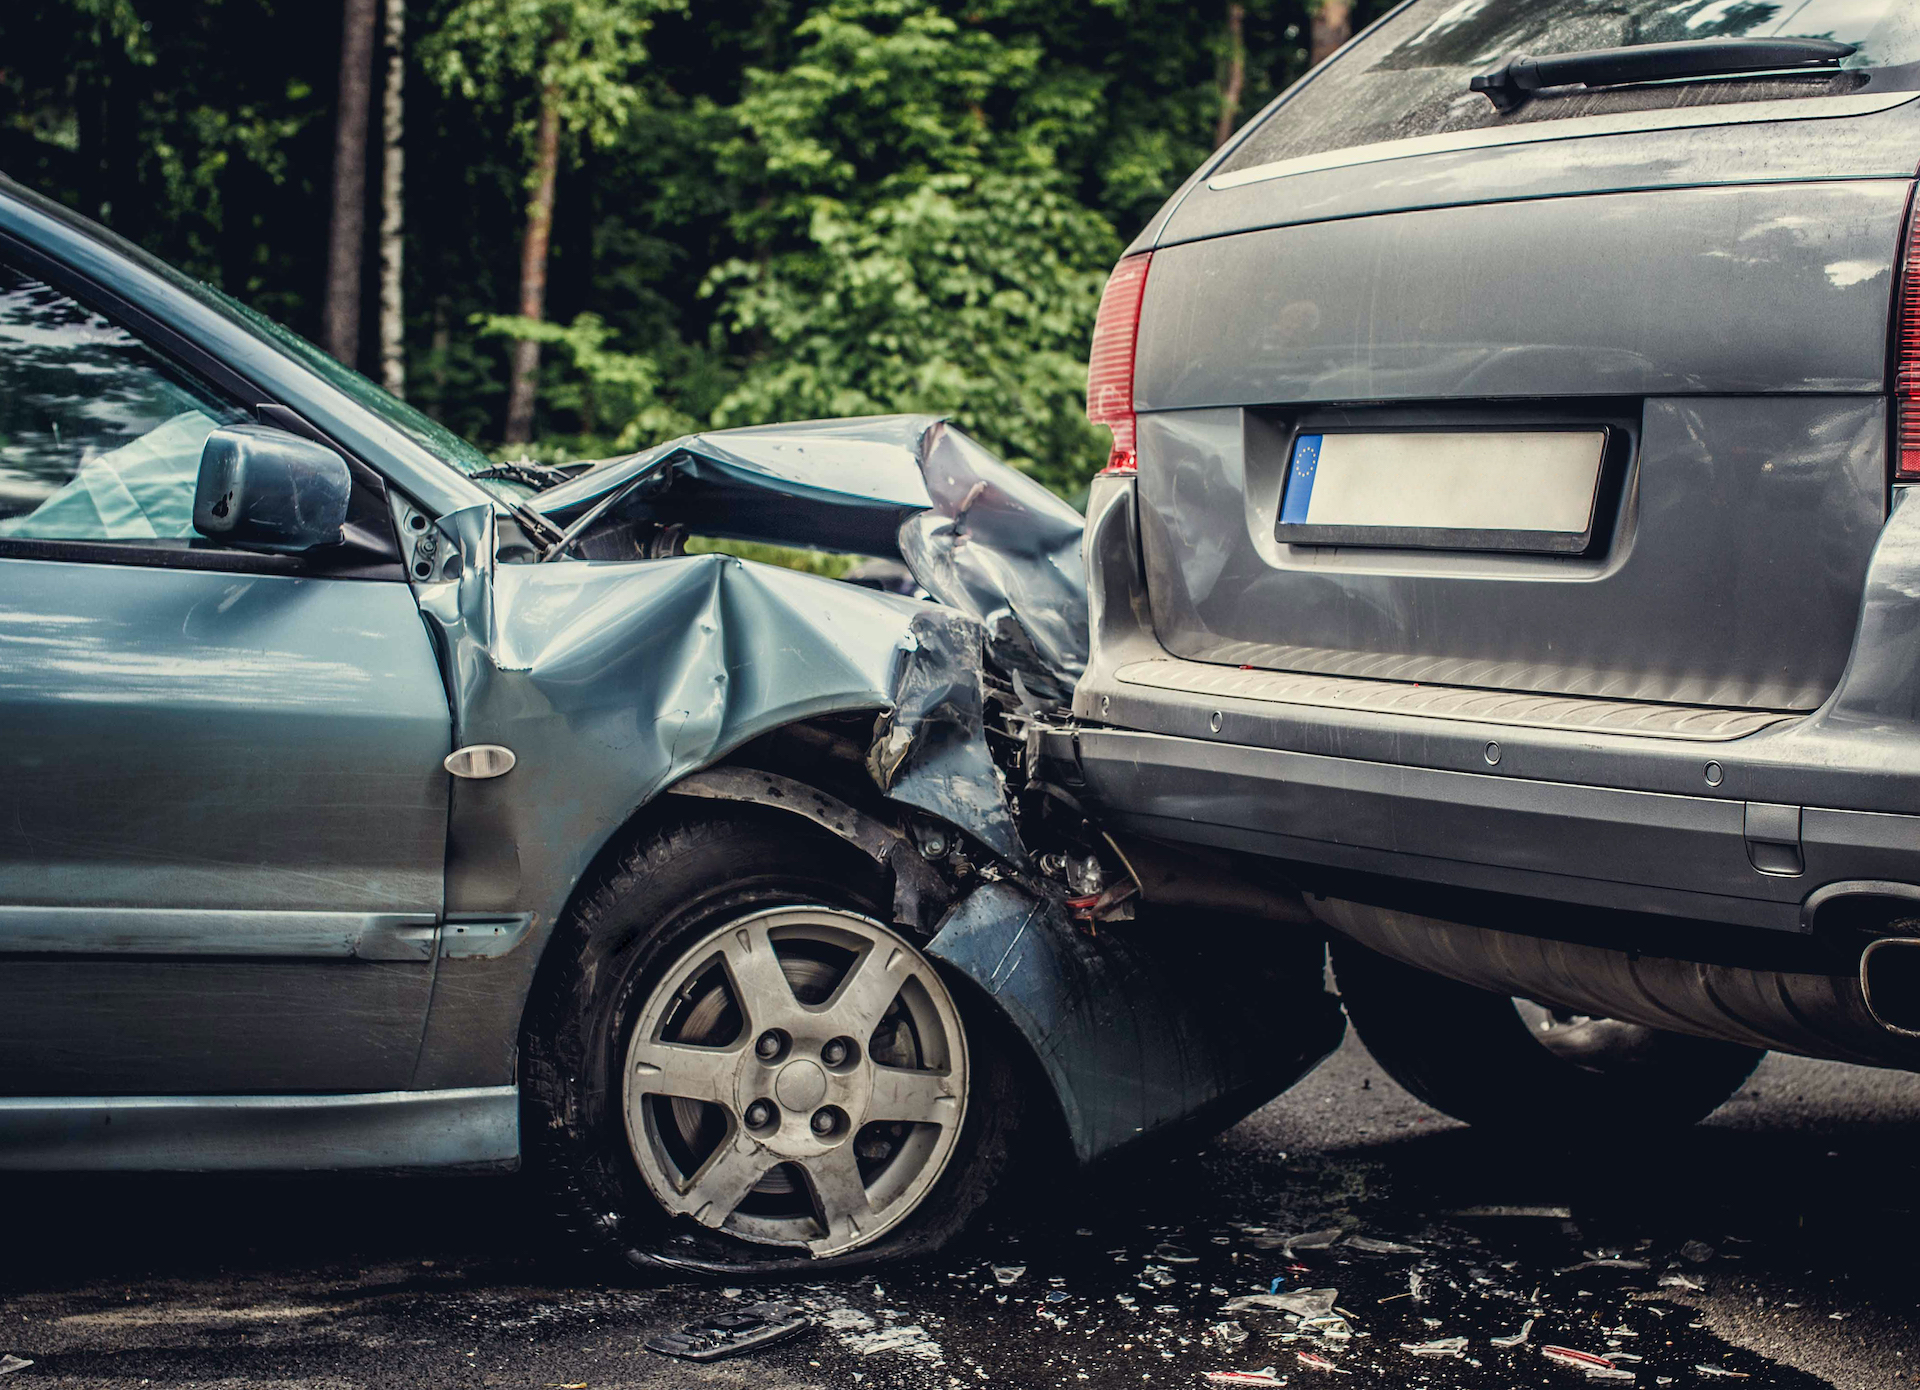 car accident needing lawyer - Personal Injury Attorney in Nashville - Wrongful Death Attorney, Truck Accident Lawyer, Car Accident Lawyer, and more | Meyers Injury Law